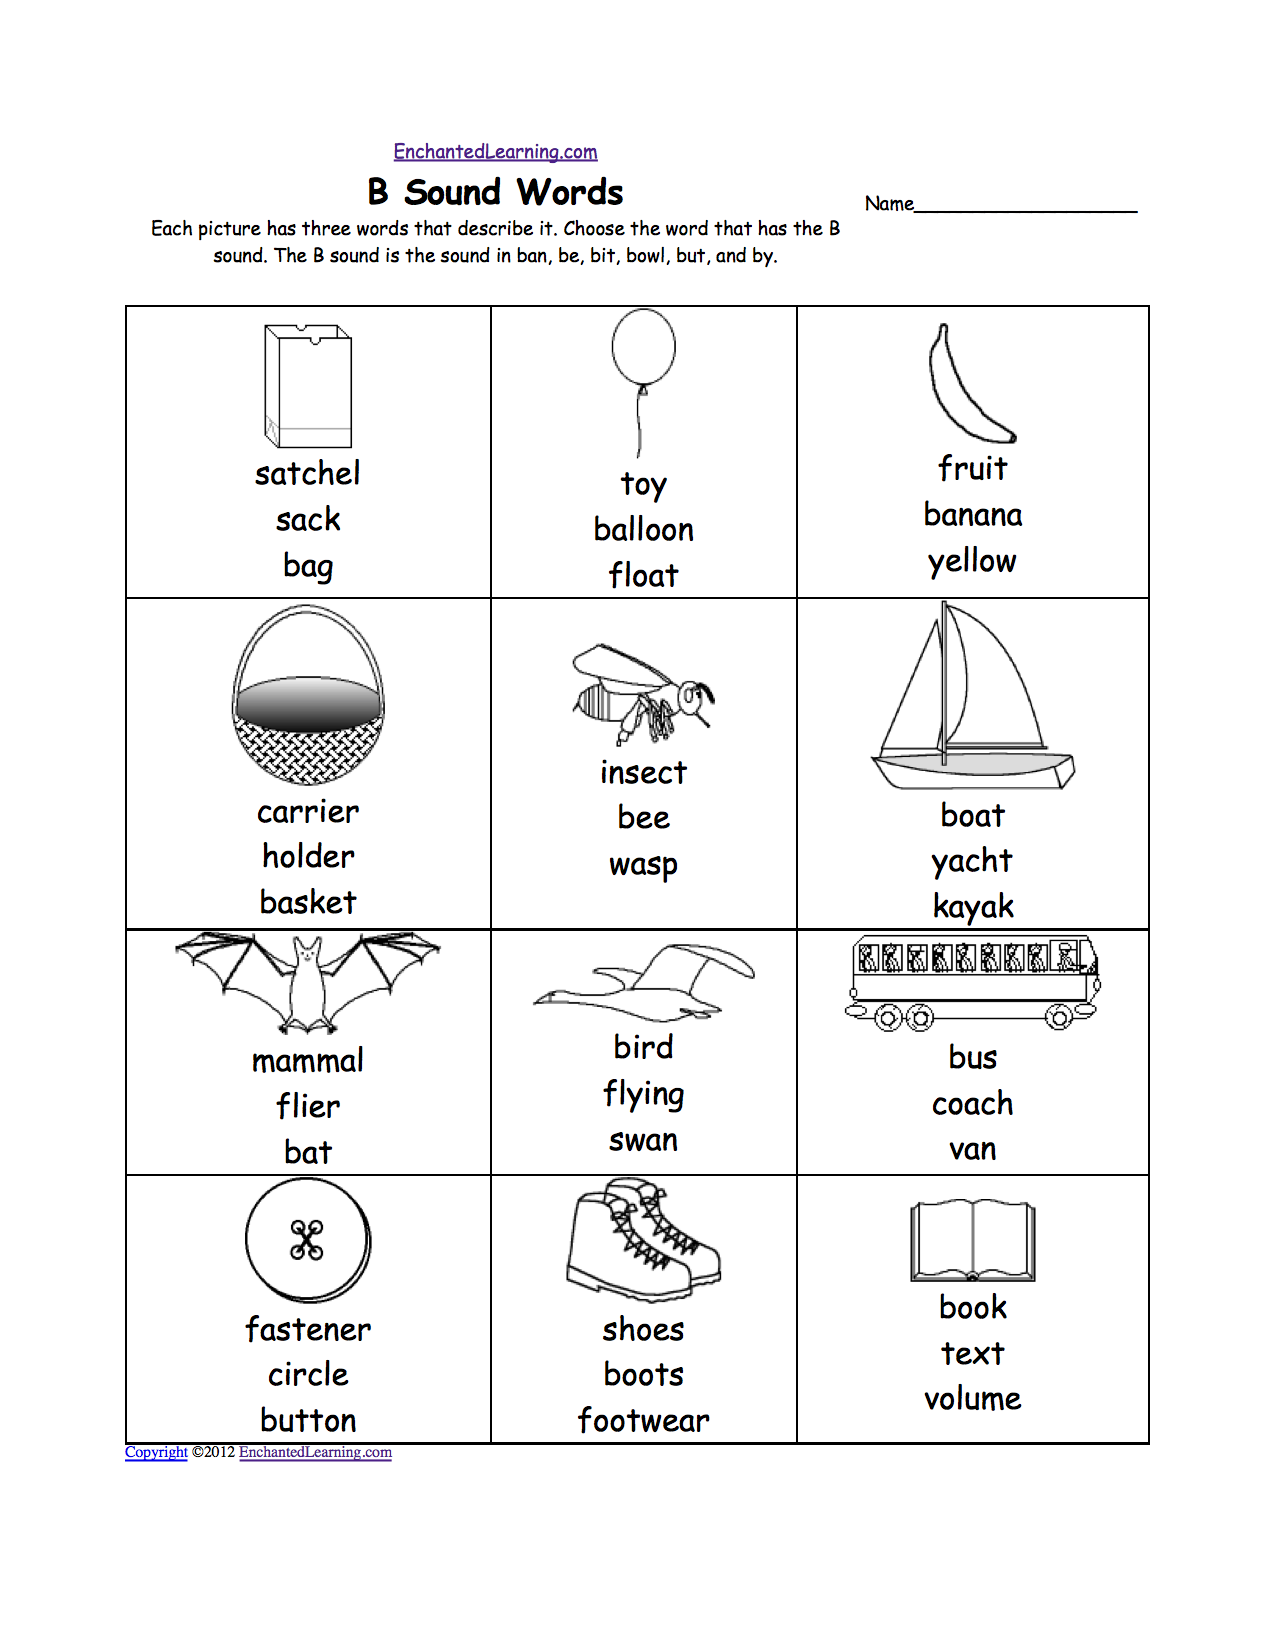 Aldiablosus  Remarkable Phonics Worksheets Multiple Choice Worksheets To Print  With Exciting Quotbquot Sound Phonics Worksheet Multiple Choice Each Picture Has Three Words That Describe It Choose The Word That Has A Quotbquot Sound The Quotbquot Sound Is The Sound  With Amazing Commutative Property Of Addition Worksheets Also Bill Nye Video Worksheets In Addition Photosynthesis Worksheets And Punctuating Dialogue Worksheet As Well As Lewis Dot Structures Worksheet Additionally Noun And Verb Worksheets From Enchantedlearningcom With Aldiablosus  Exciting Phonics Worksheets Multiple Choice Worksheets To Print  With Amazing Quotbquot Sound Phonics Worksheet Multiple Choice Each Picture Has Three Words That Describe It Choose The Word That Has A Quotbquot Sound The Quotbquot Sound Is The Sound  And Remarkable Commutative Property Of Addition Worksheets Also Bill Nye Video Worksheets In Addition Photosynthesis Worksheets From Enchantedlearningcom